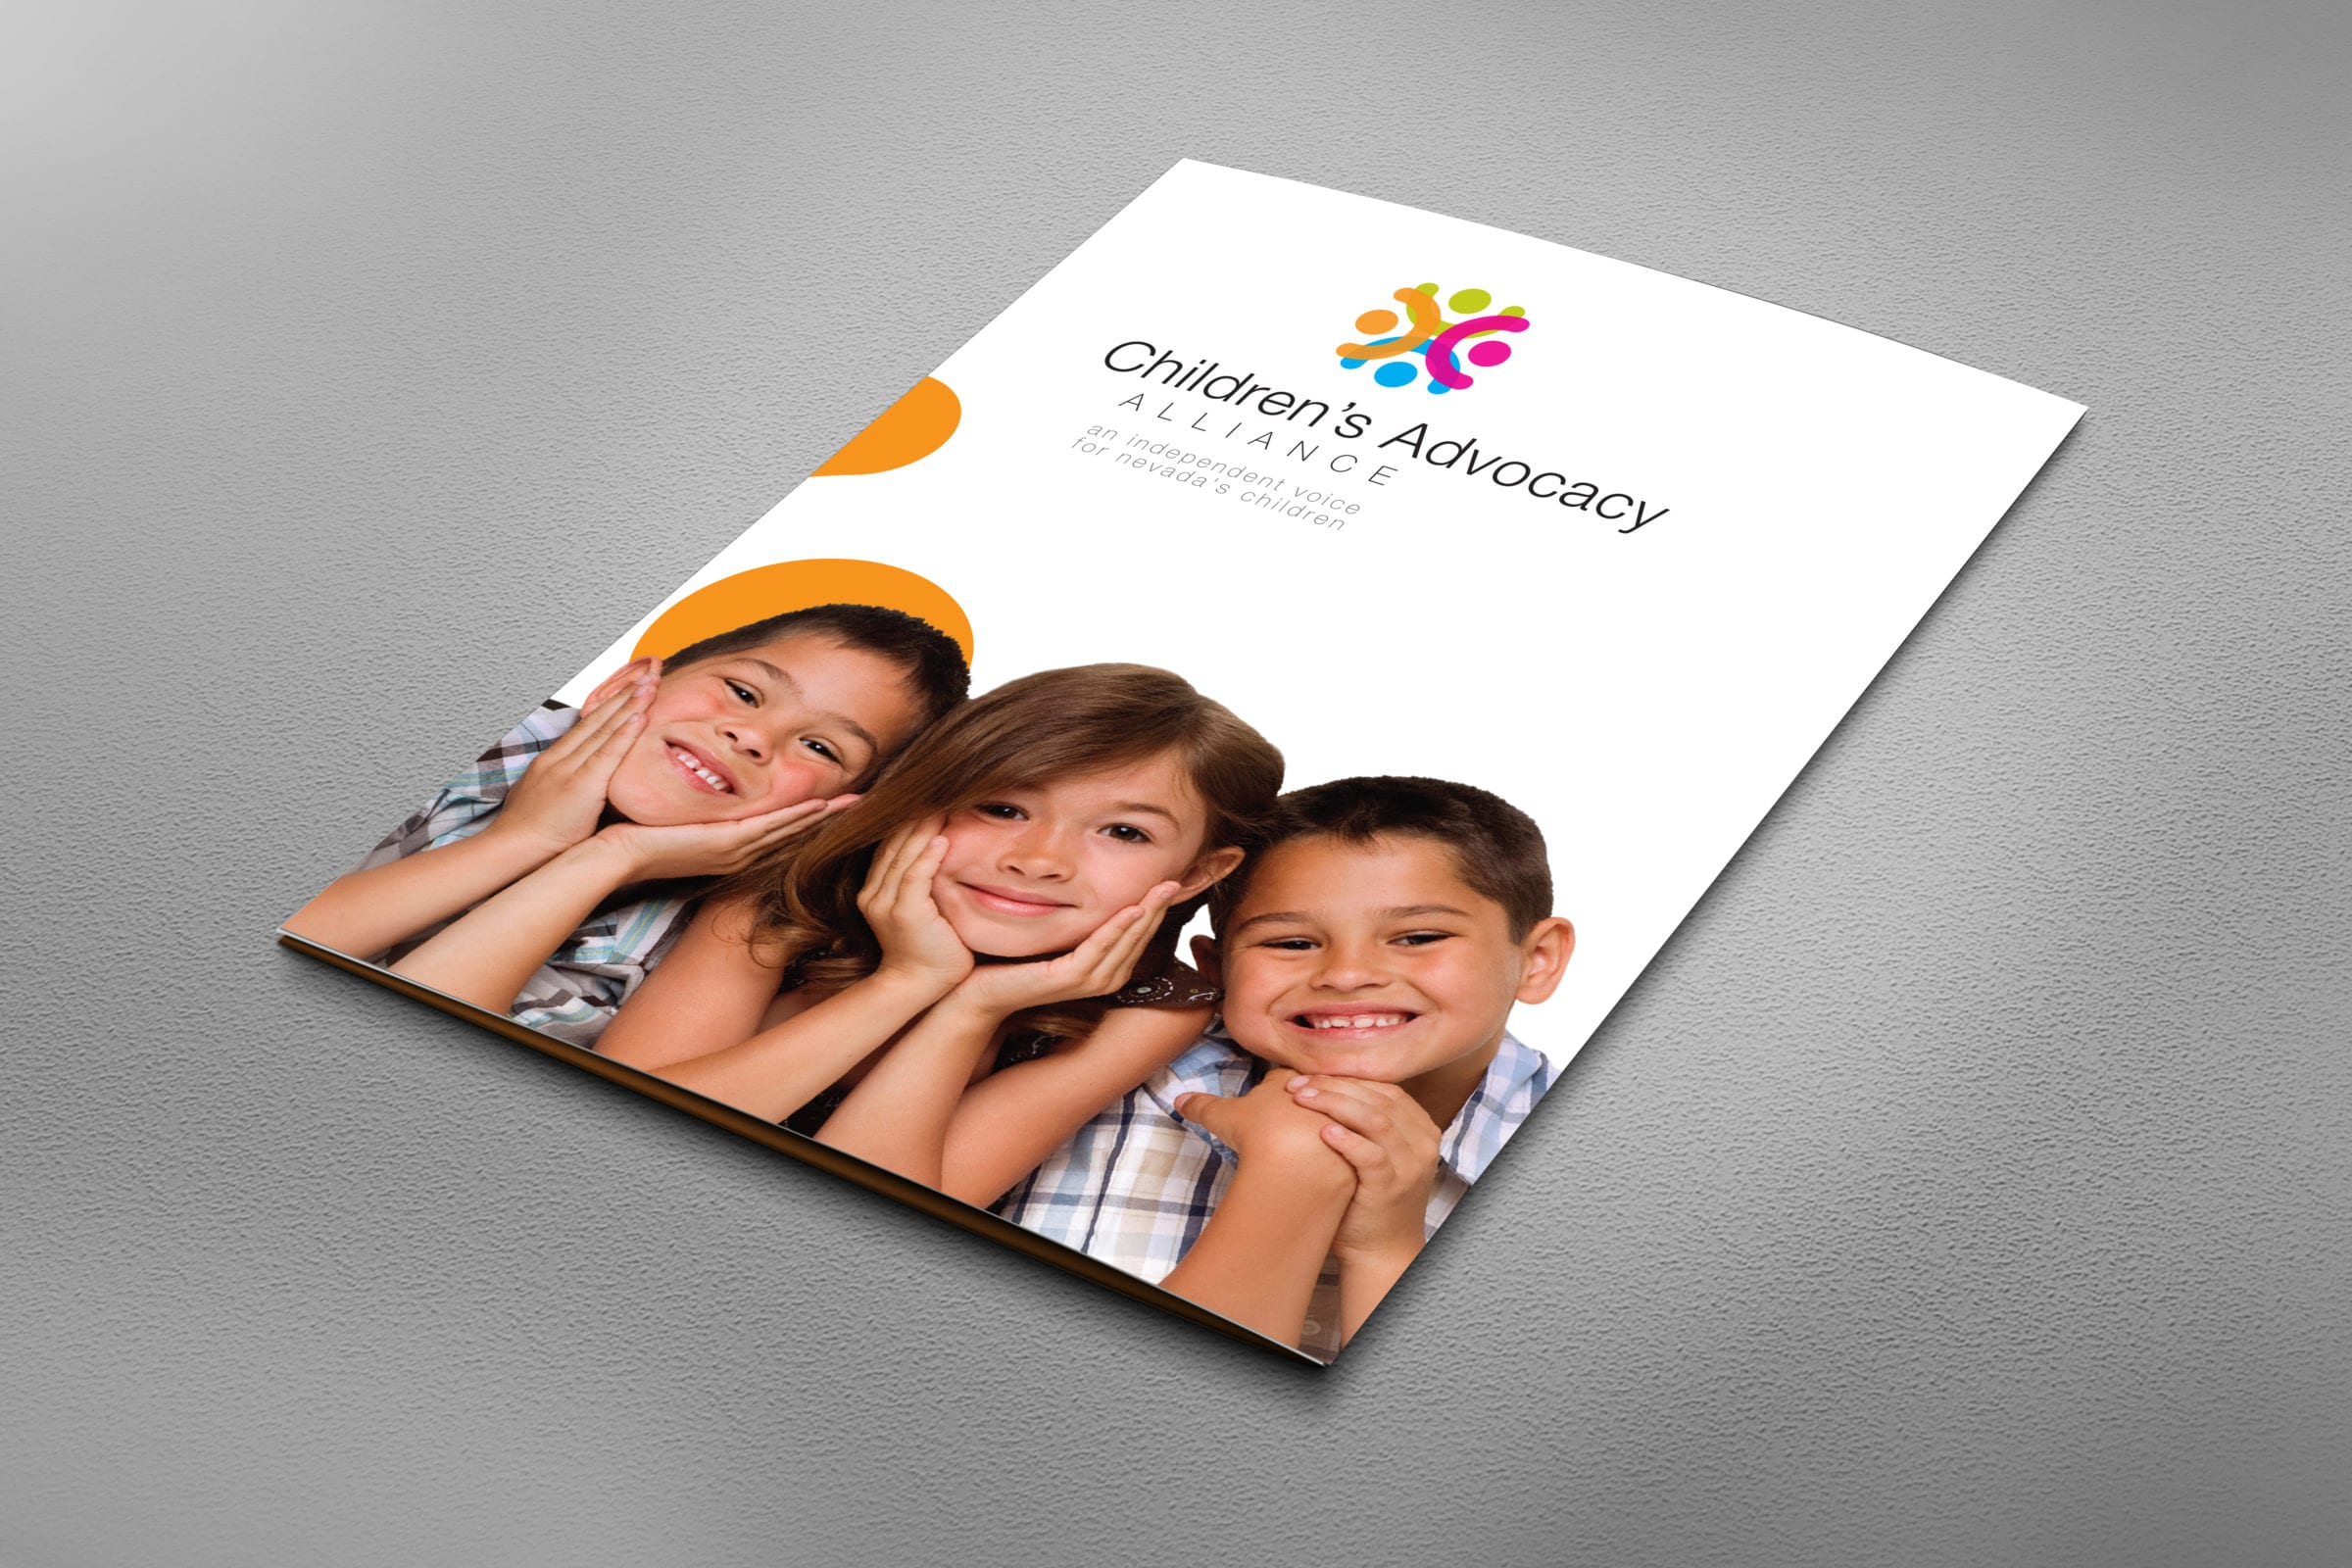 Children's Advocacy Alliance branded folder with children pictured on the cover